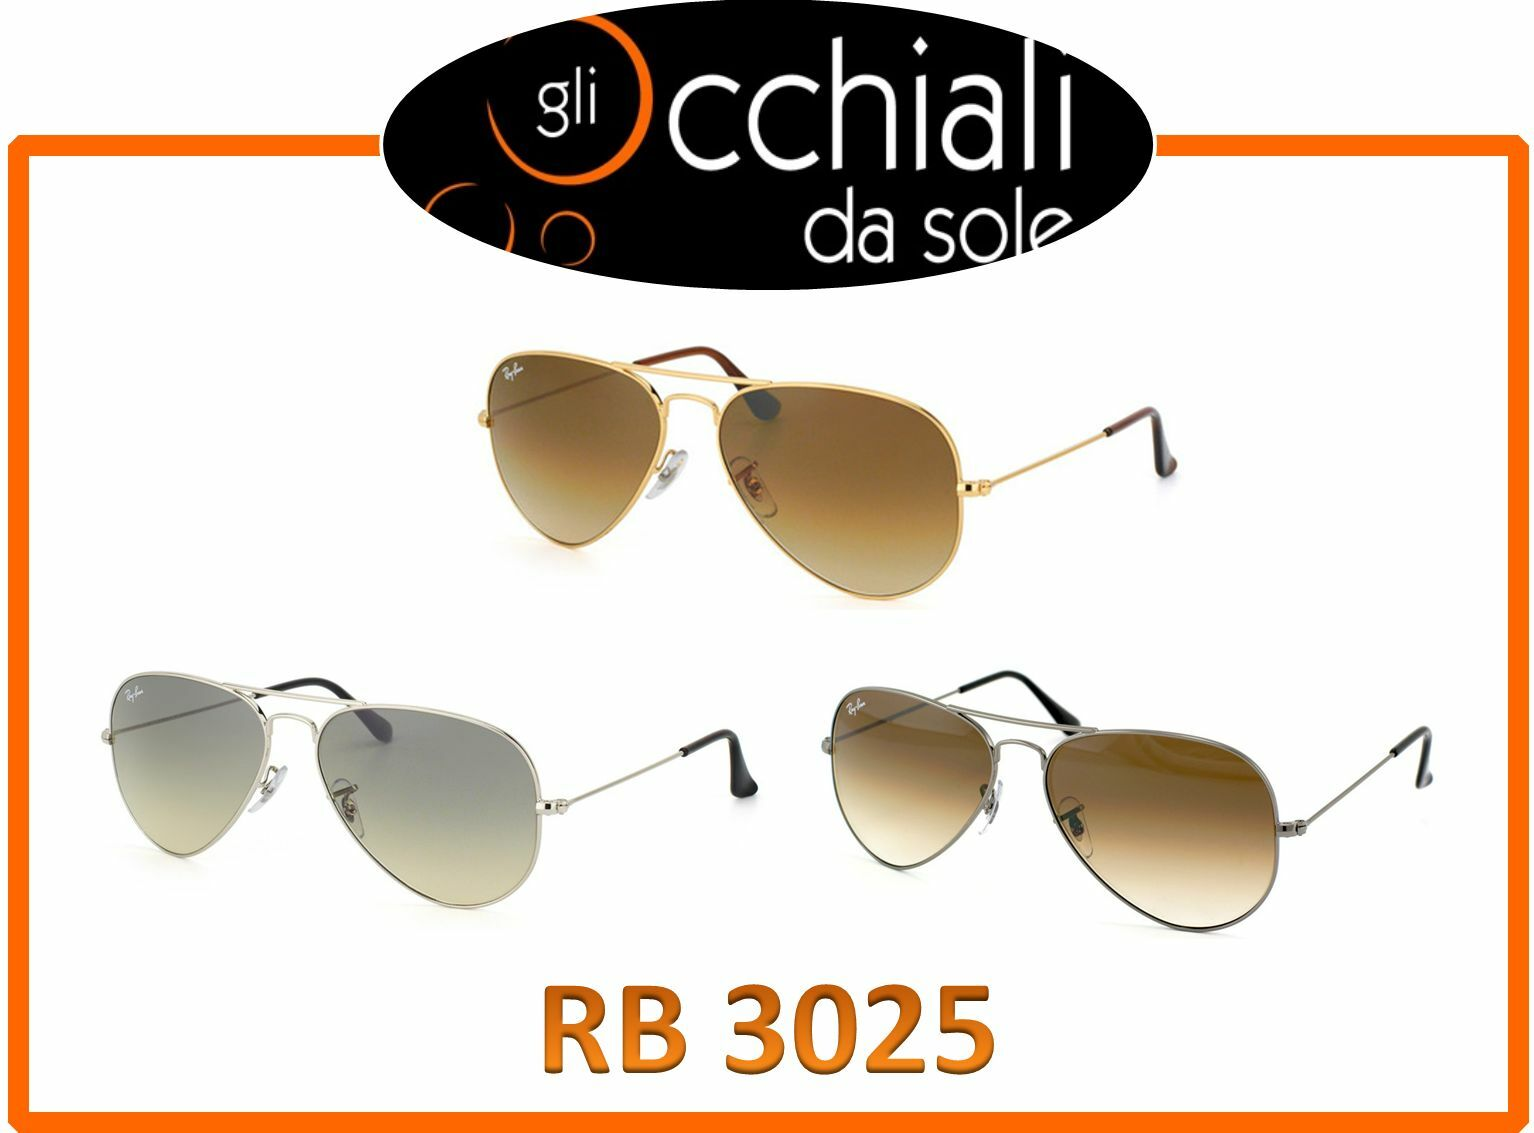 Ray Ban 3025 Aviator Large Metal, occhiali da sole Pilot, Best Seller